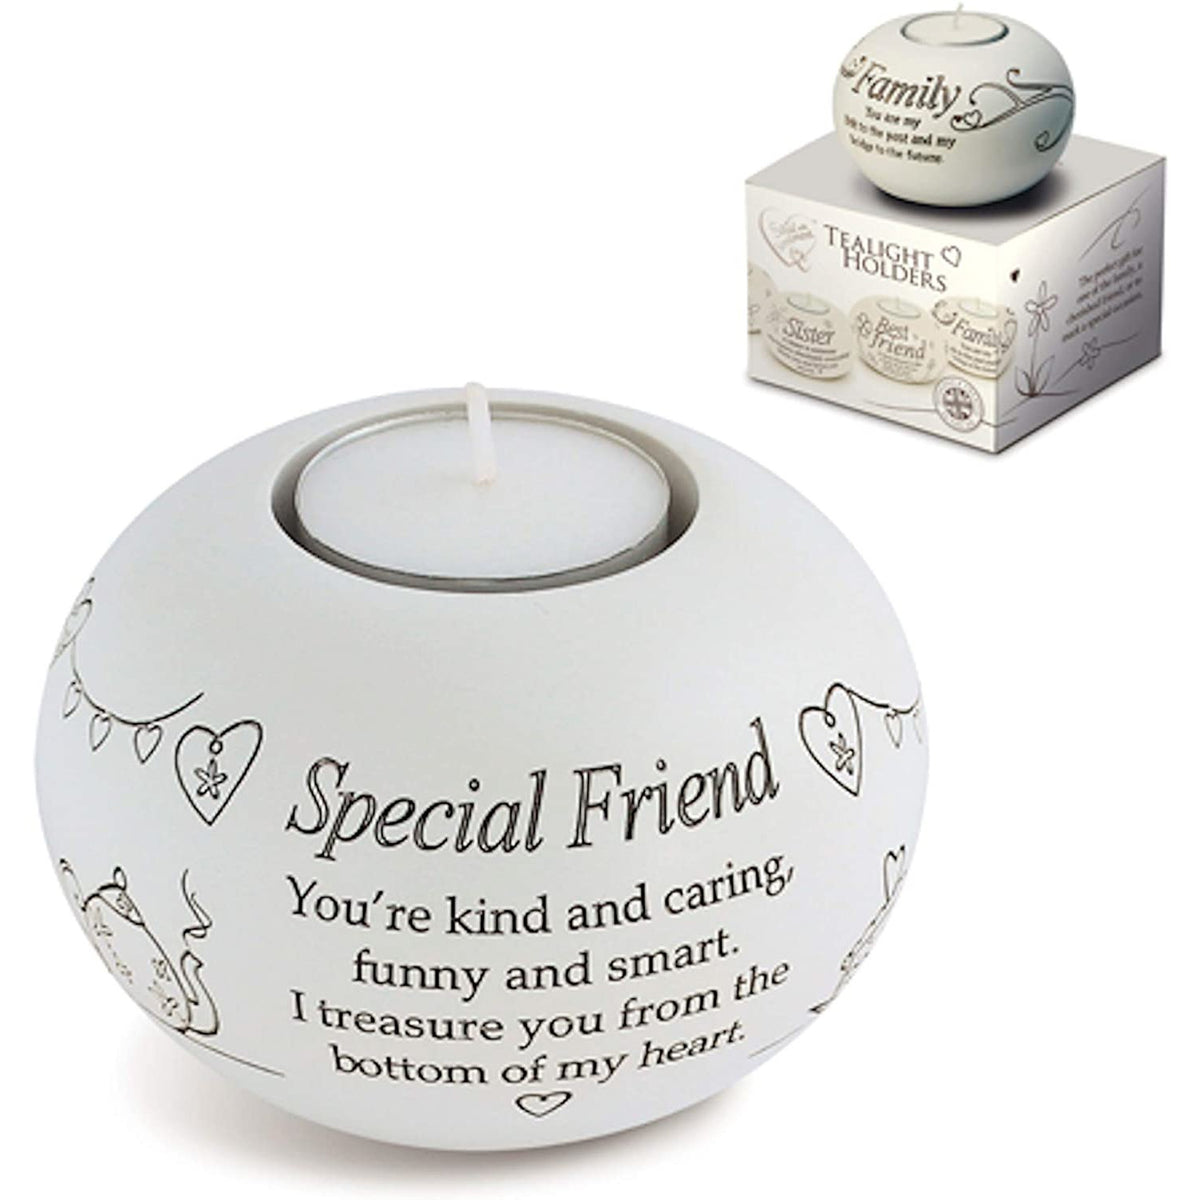 Special Friend Tealight Holder